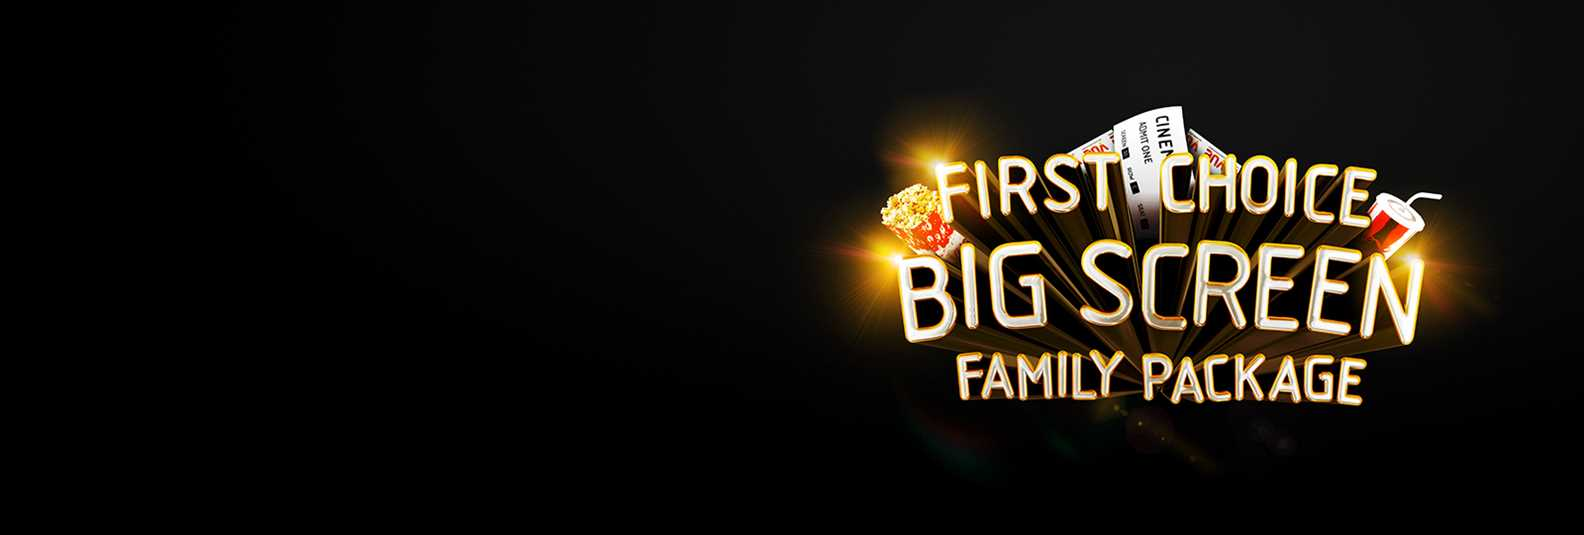 The First Choice Big Screen Family Package